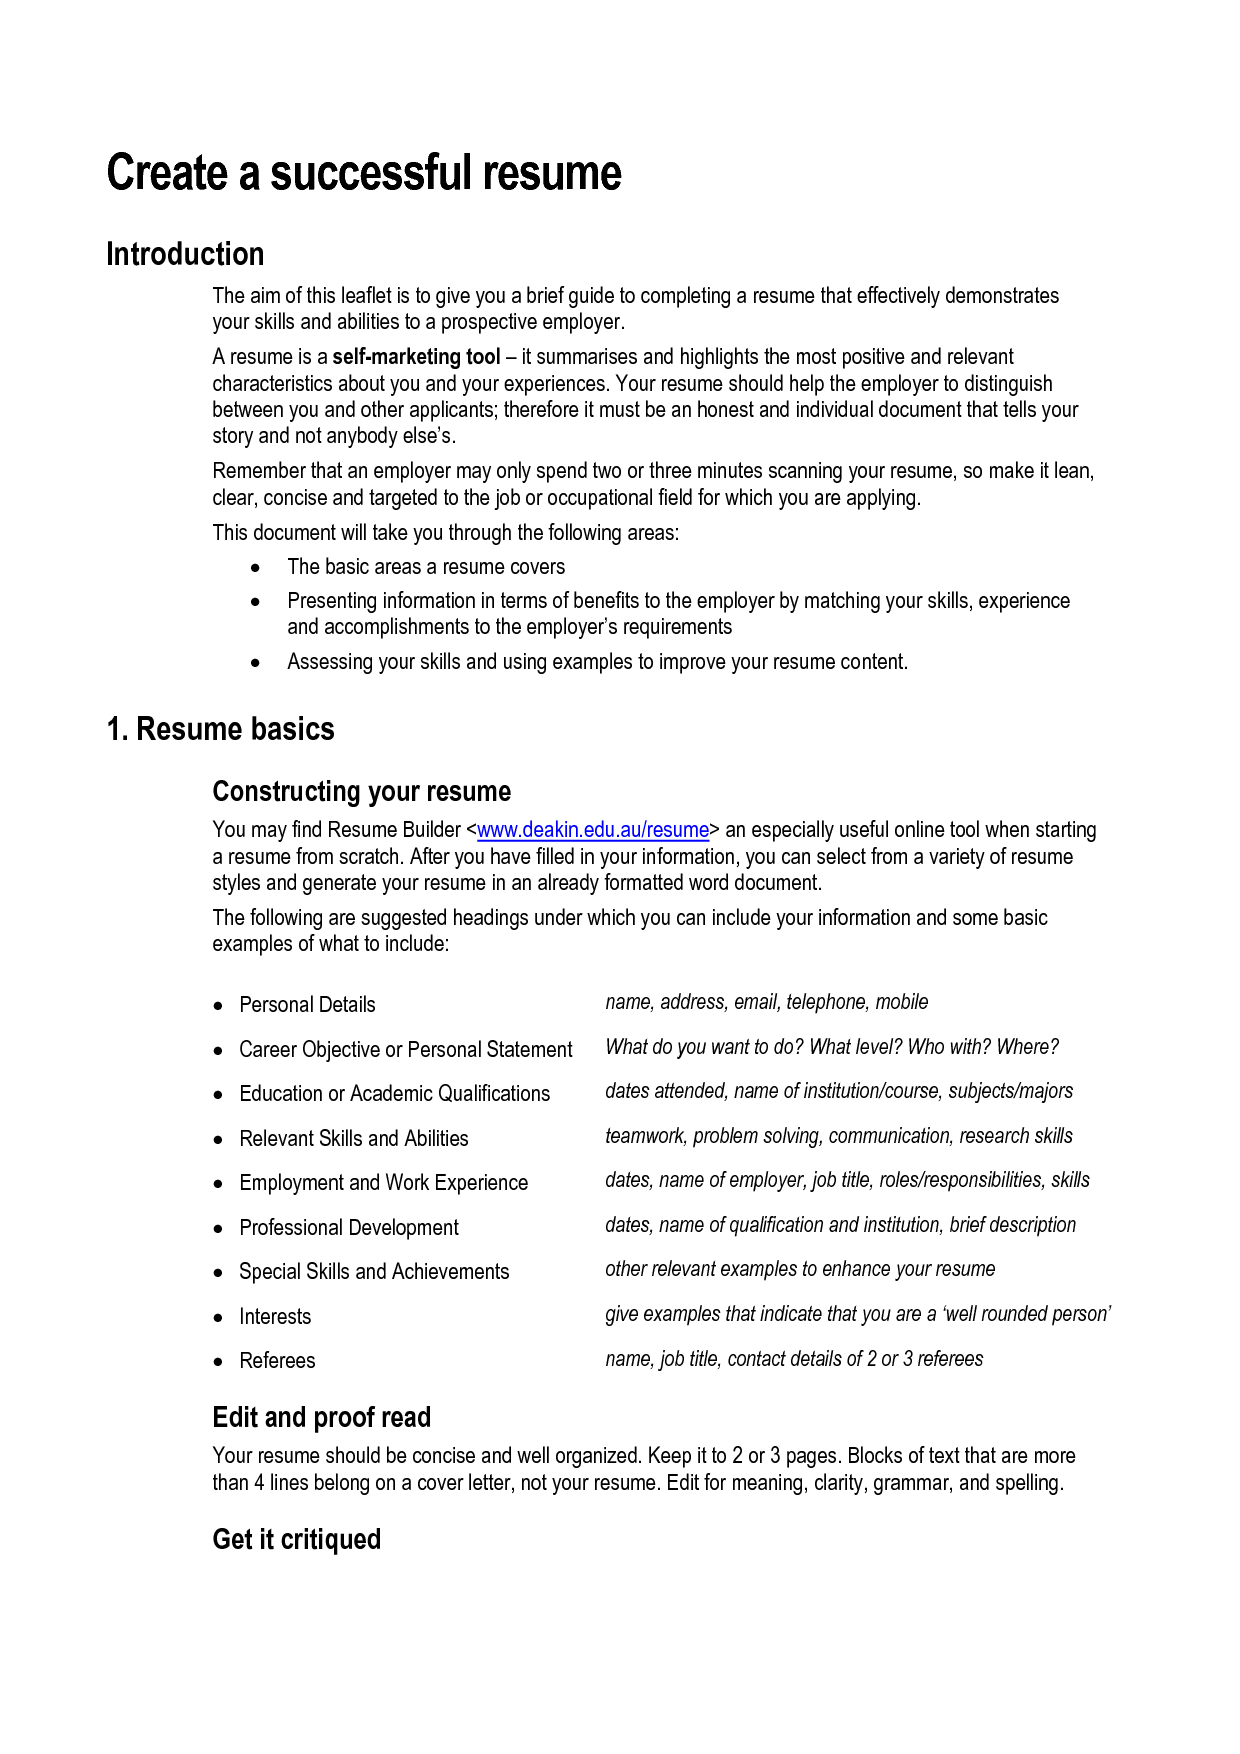 Good Resume Objective Resume Skills And Ability  How To Create A Resume  Doc  Resumes